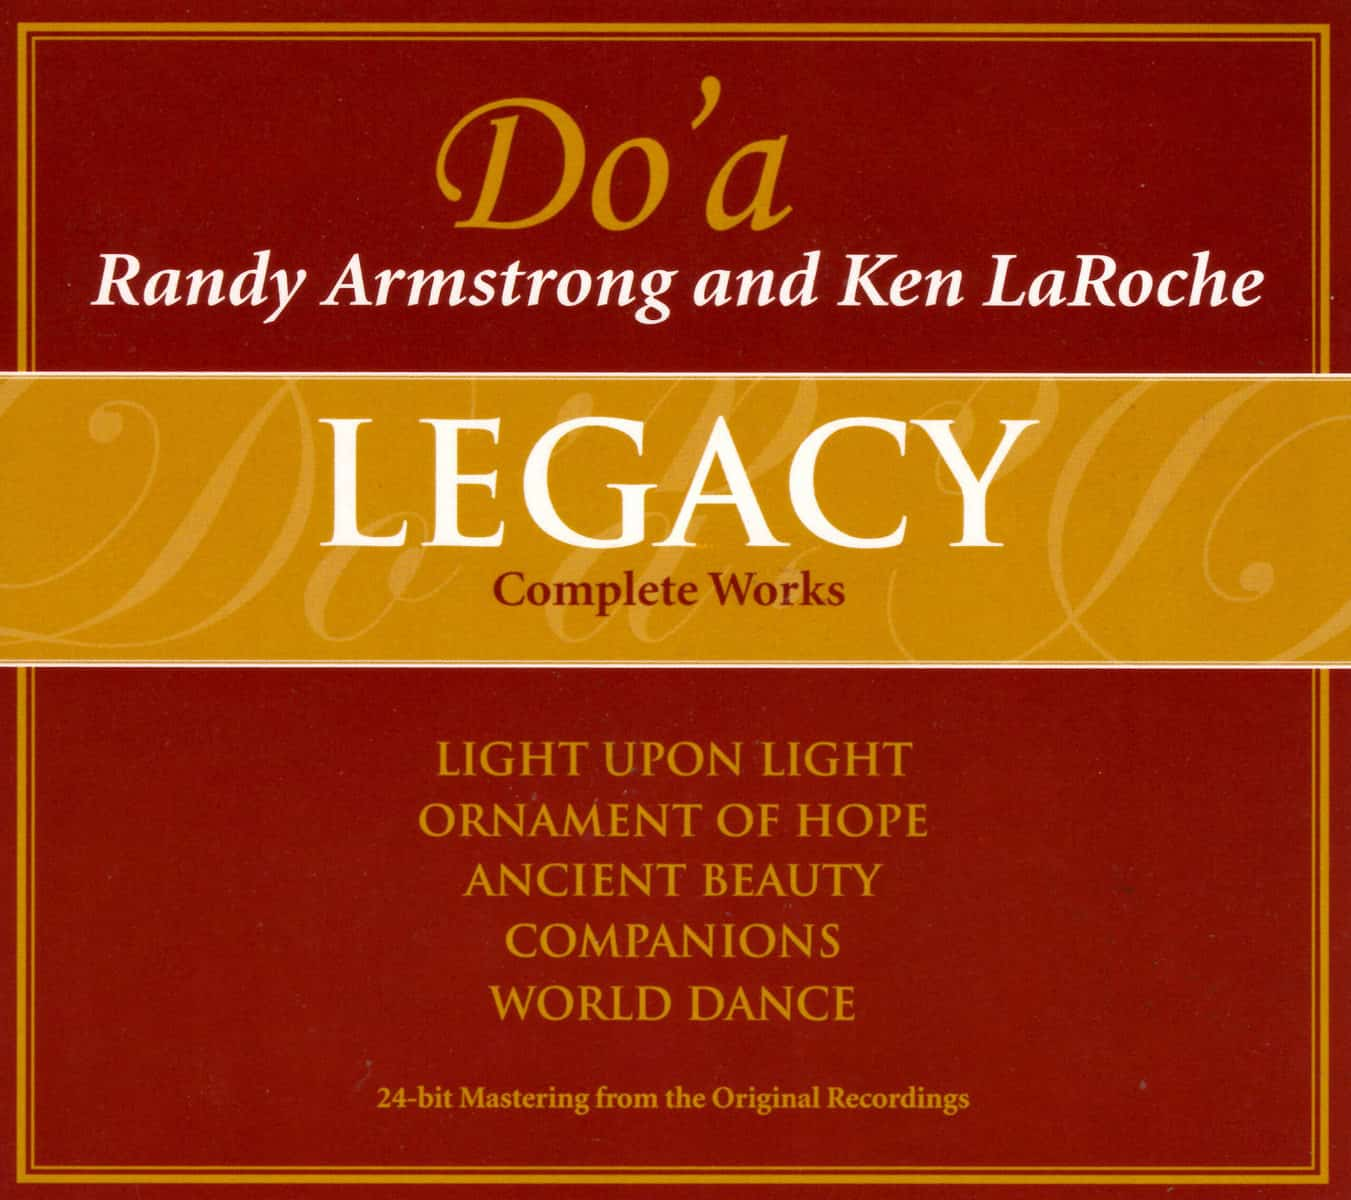 """Review of Do'a's """"Legacy Complete Works"""" Box Set by The Wire"""